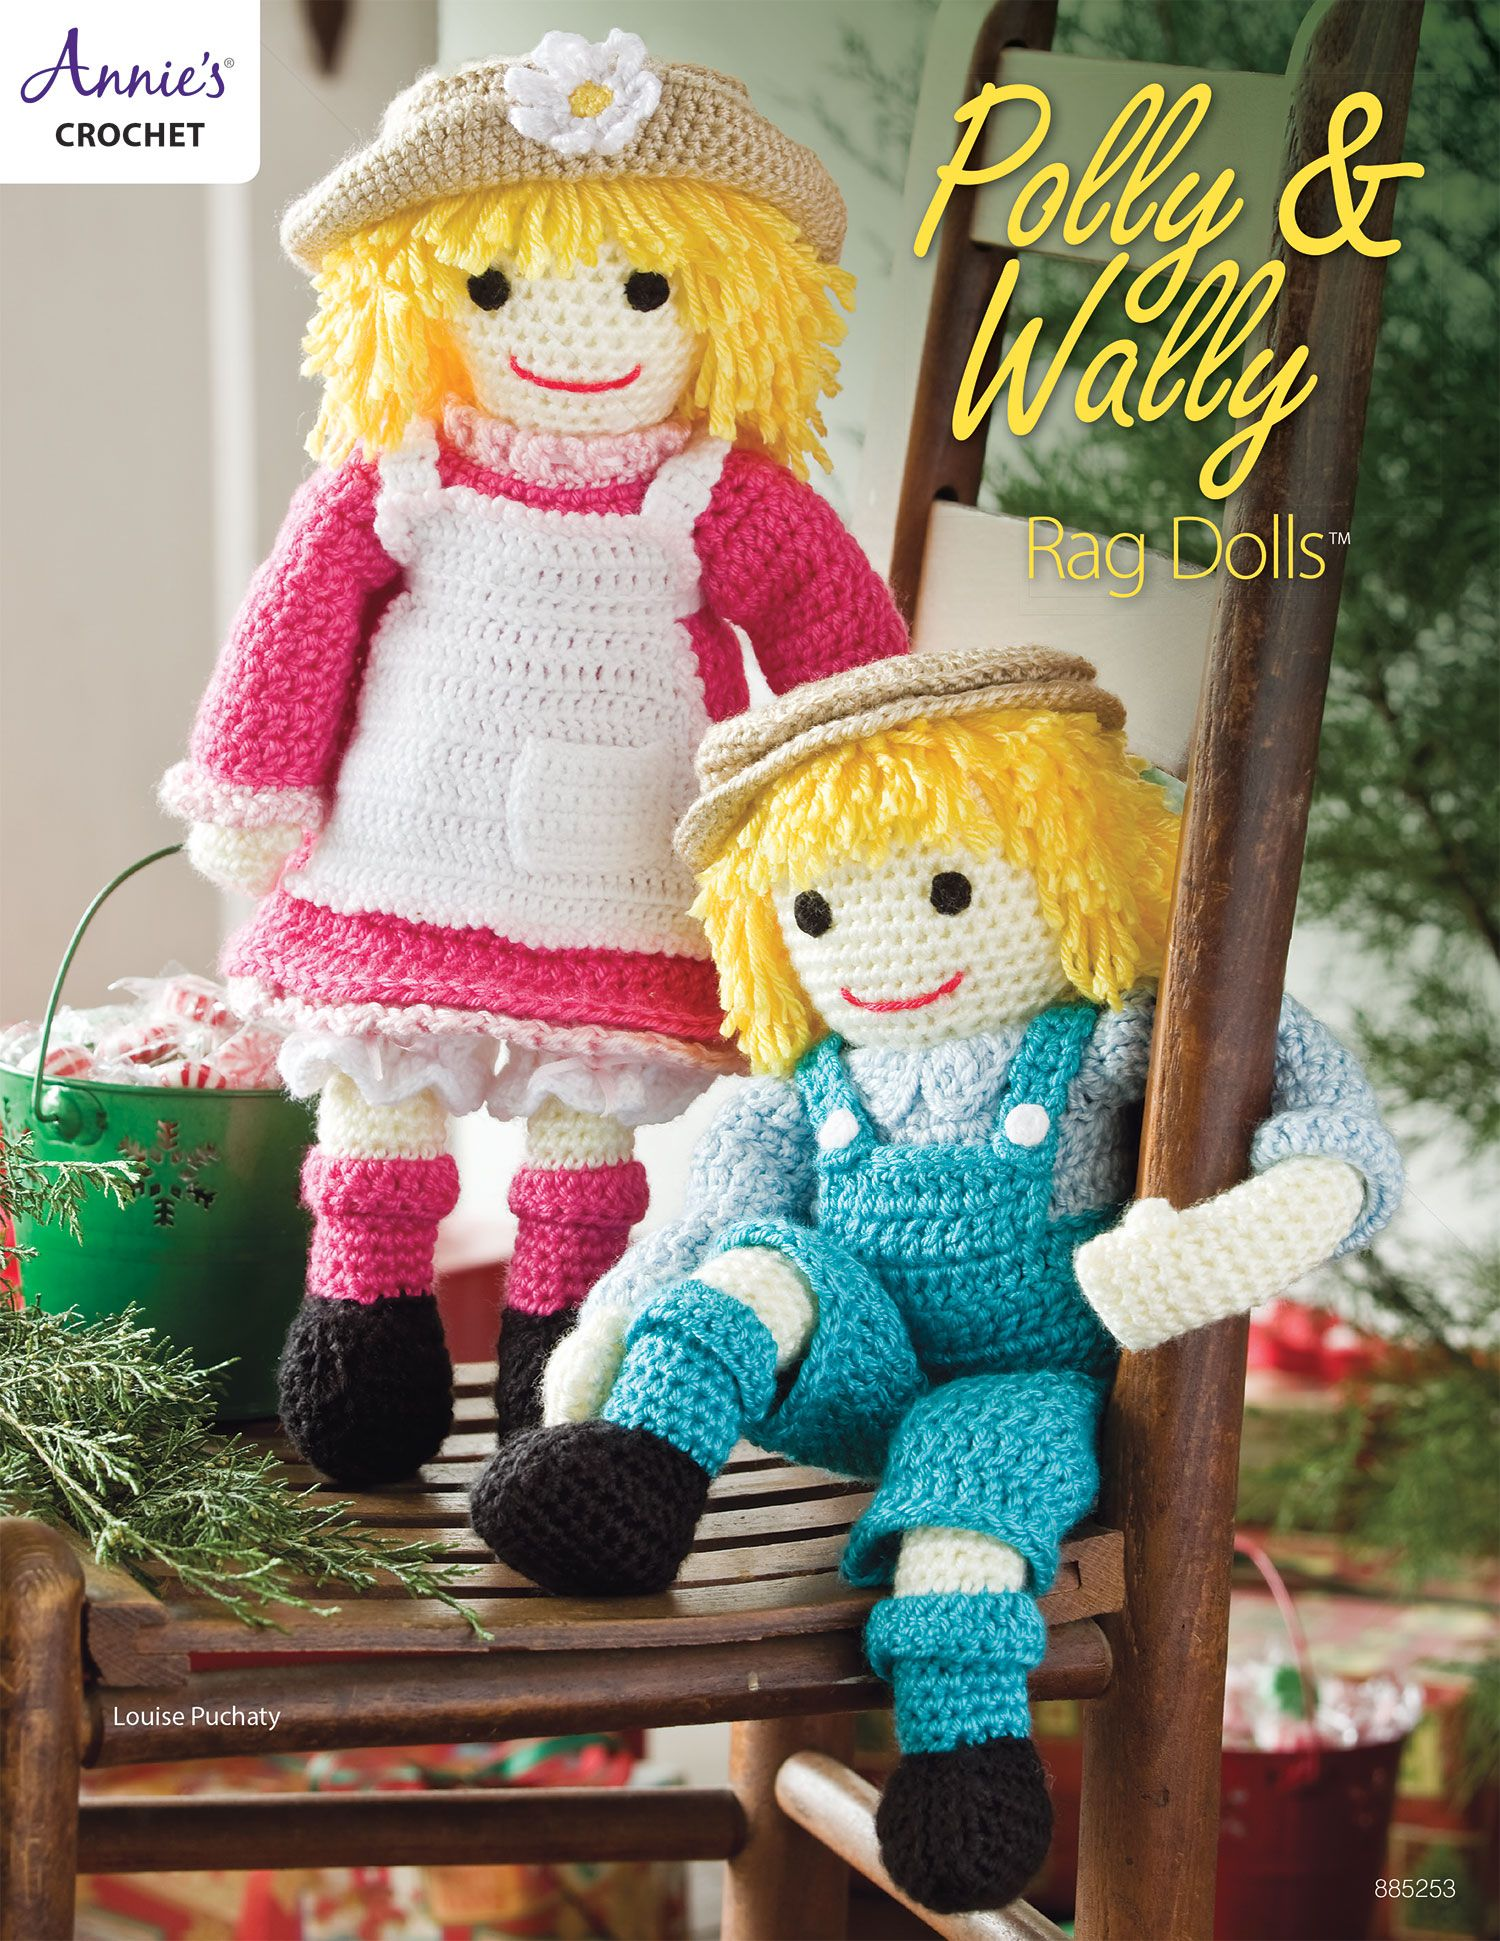 Crochet Dolls, Crochet Doll Pattern, Crochet Doll Clothes, Crochet Baby,  Knit Crochet